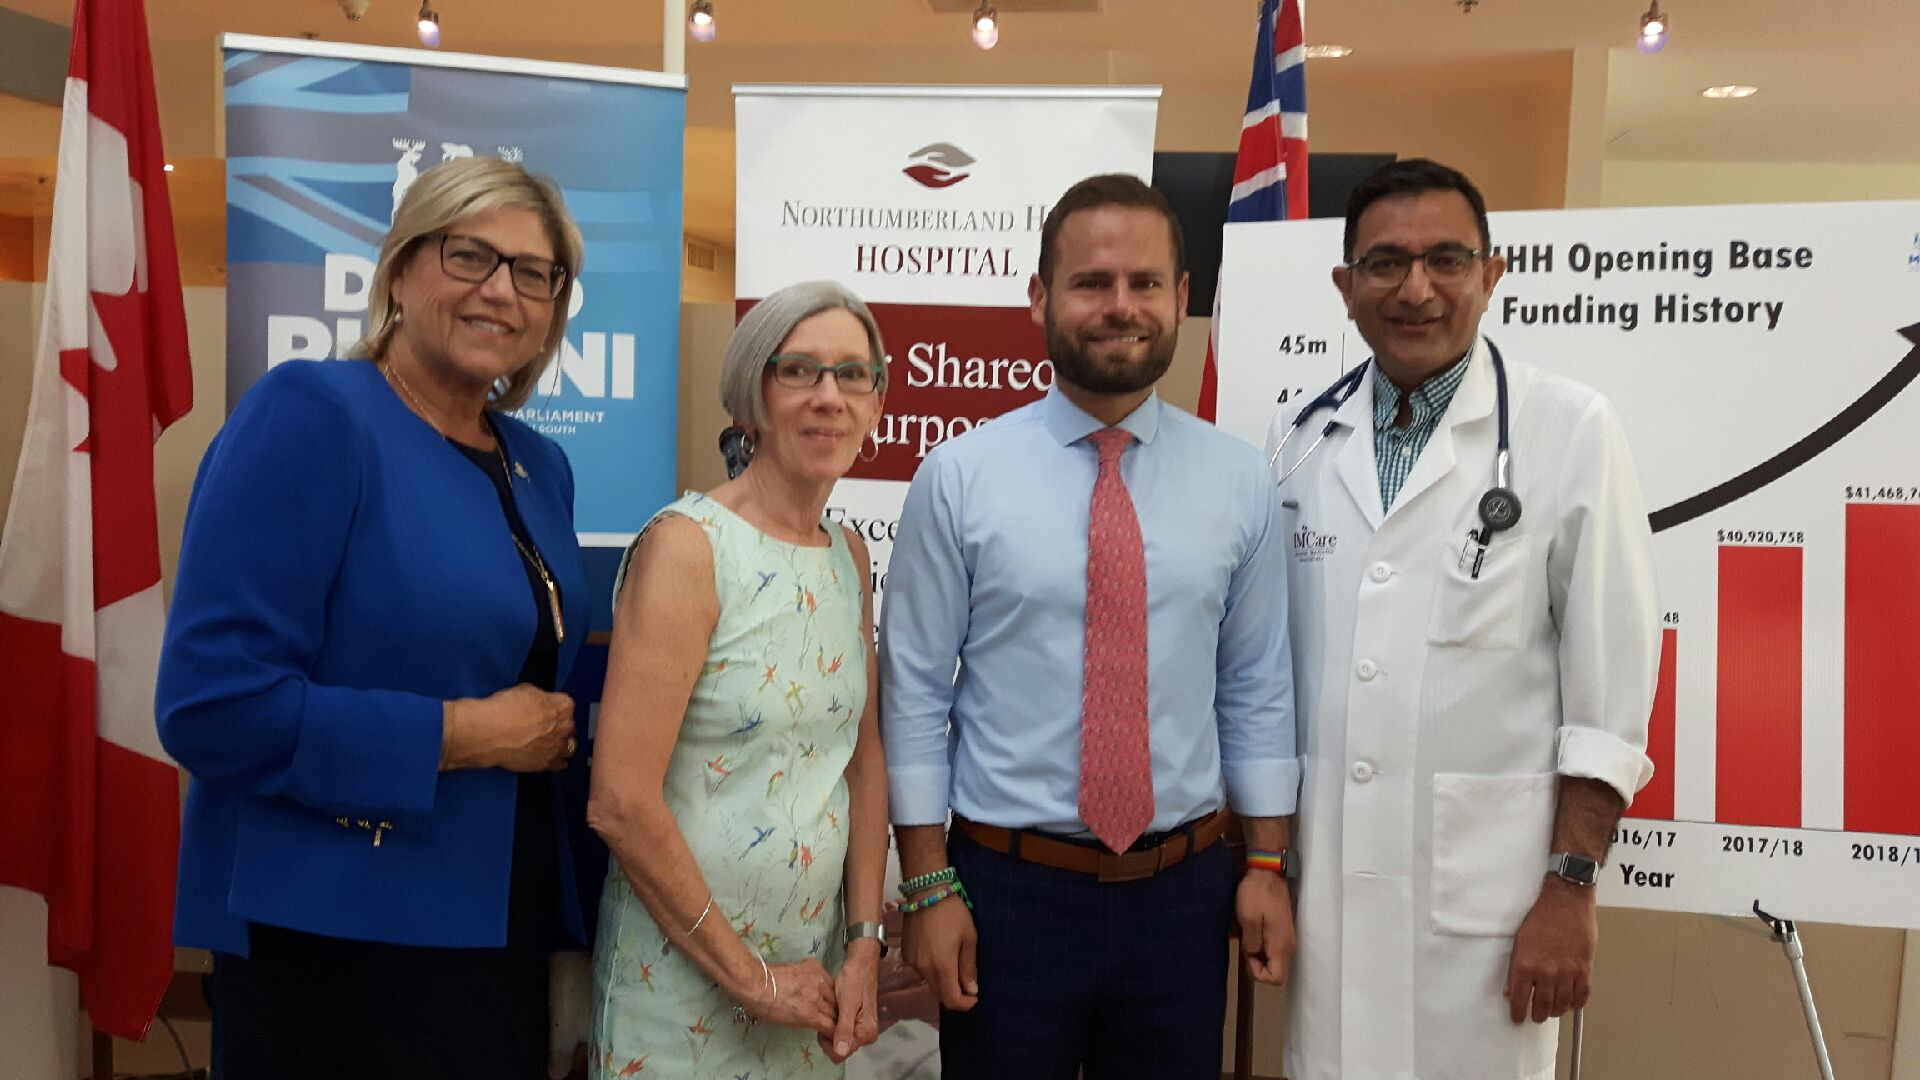 From left, Northumberland Hills Hospital president and chief executive officer Linda Davis and board chair Pam Went welcomed Northumberland-Peterborough South MPP David Piccini Thursday for a good-news funding announcement, along with NHH chief of staff Dr. Mukesh Bhargava.